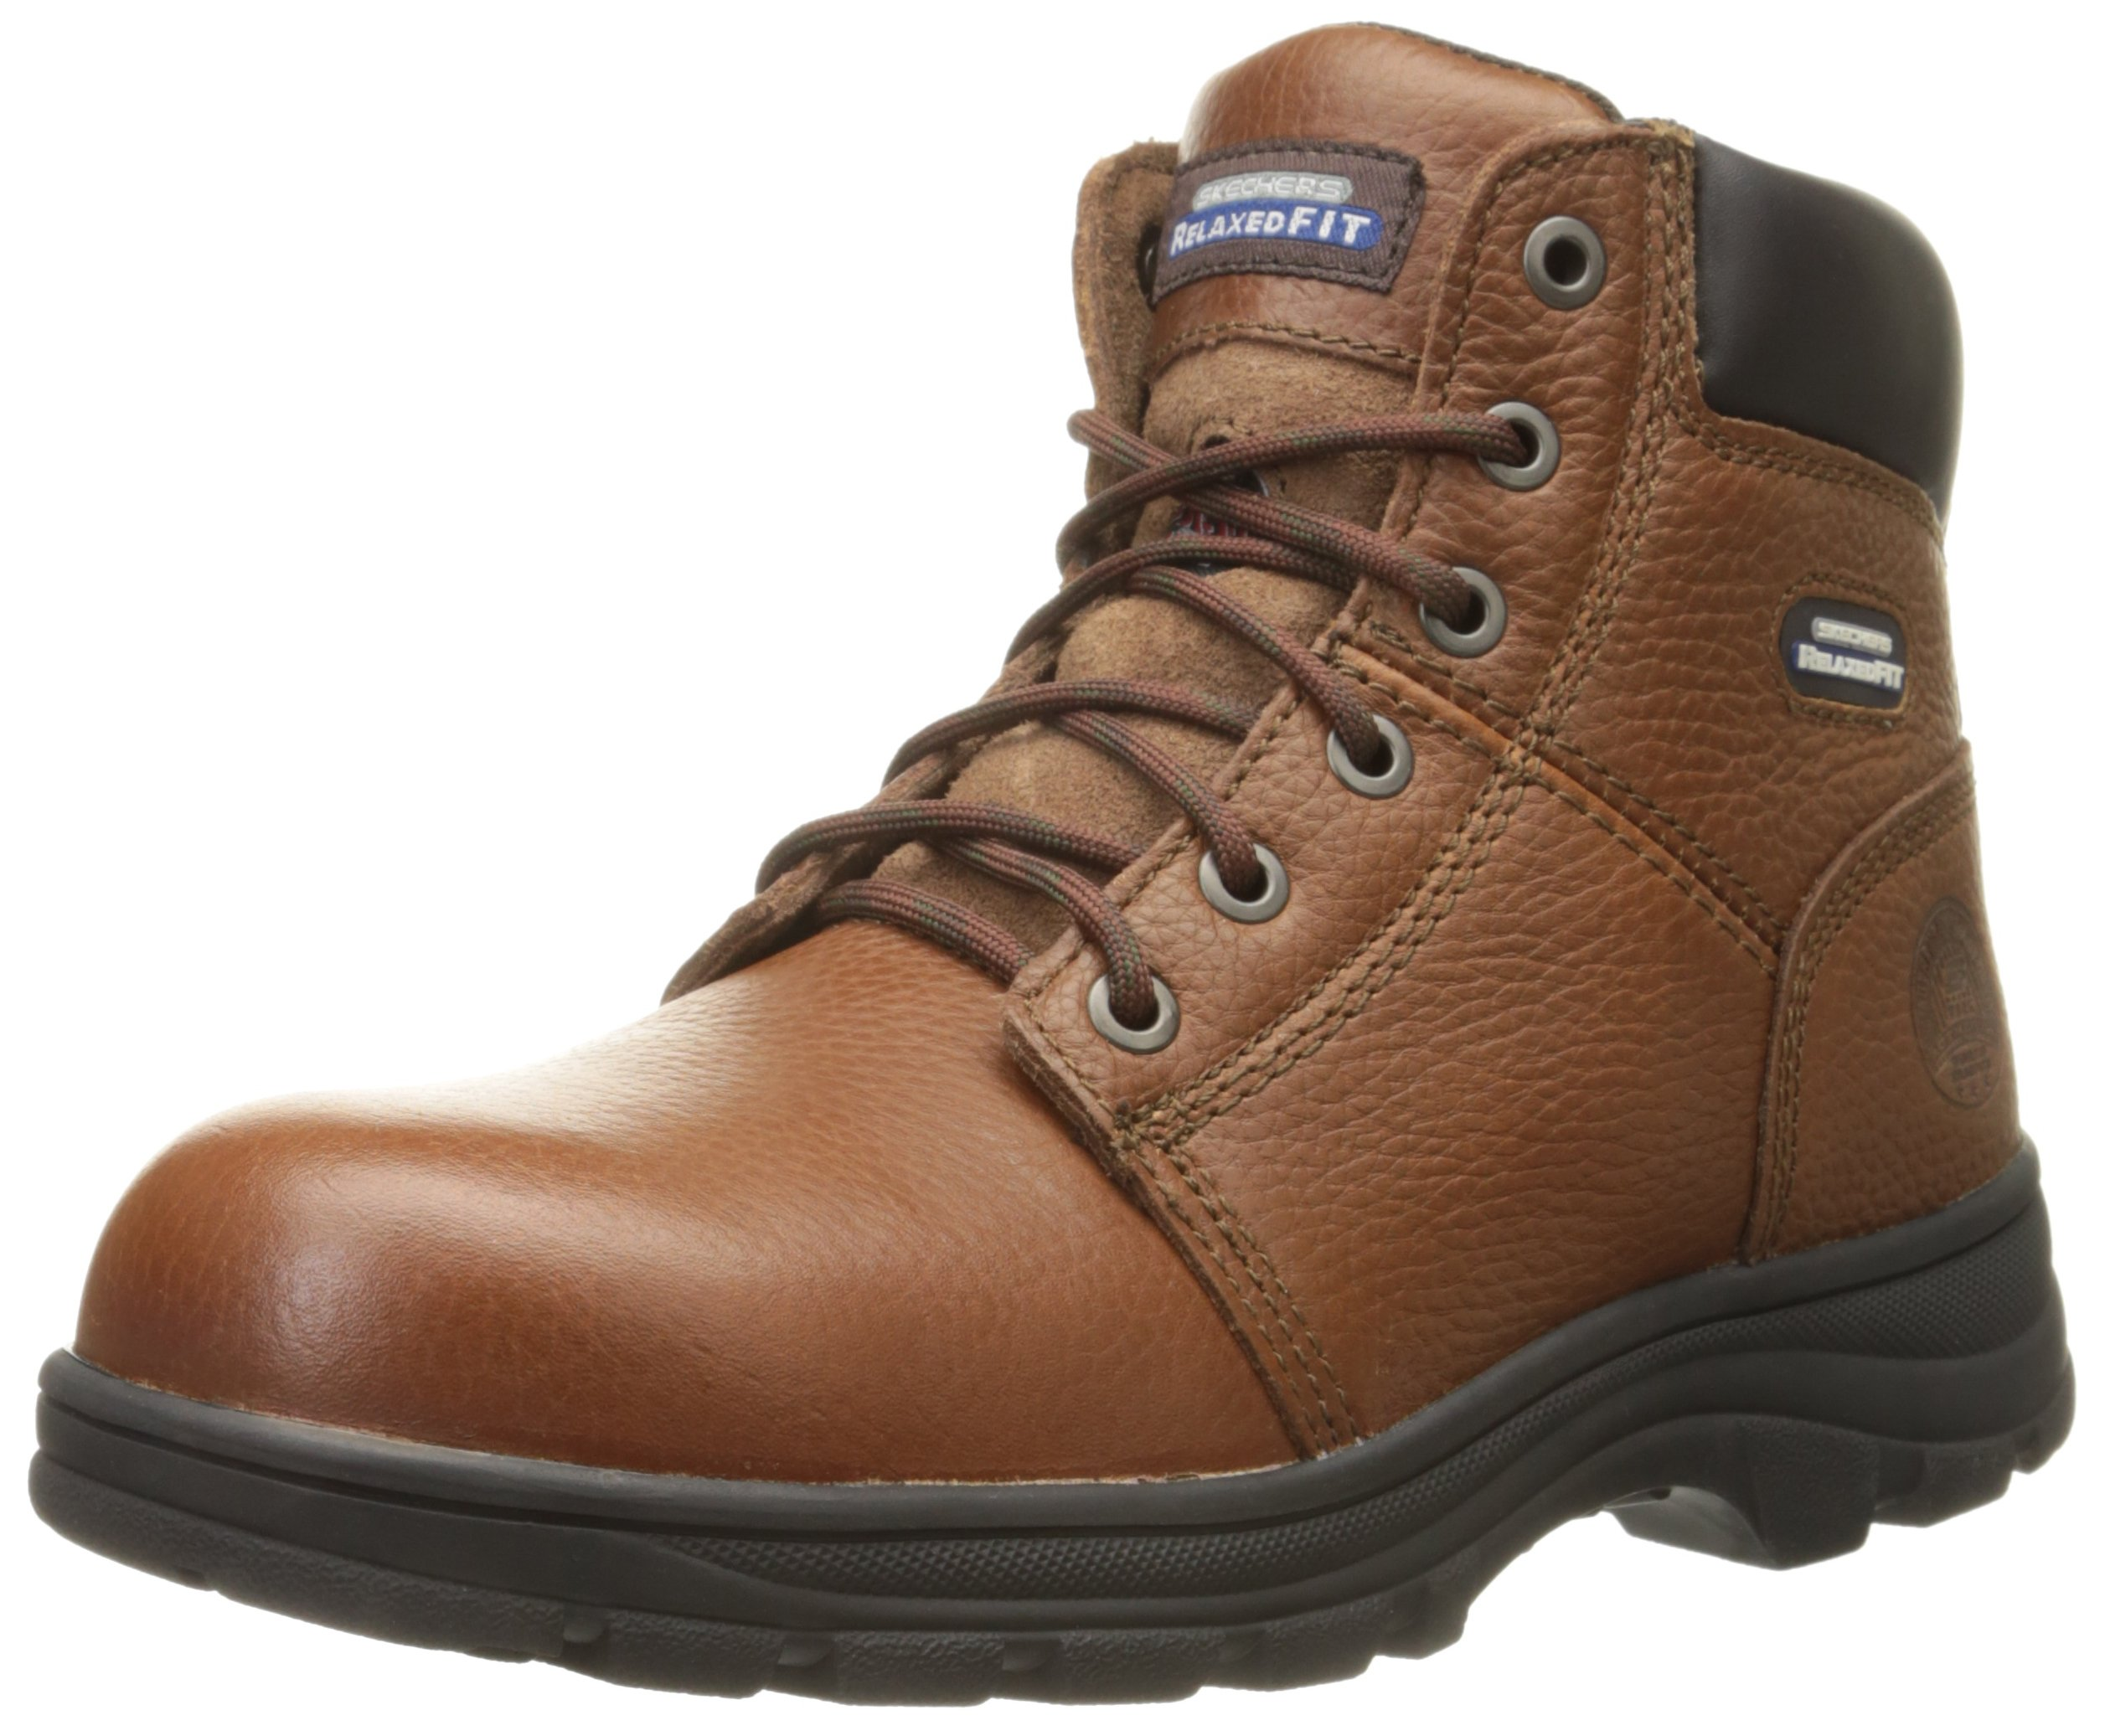 Skechers for Work Men's Workshire Relaxed Fit Work Steel Toe Boot,Brown,14 W US